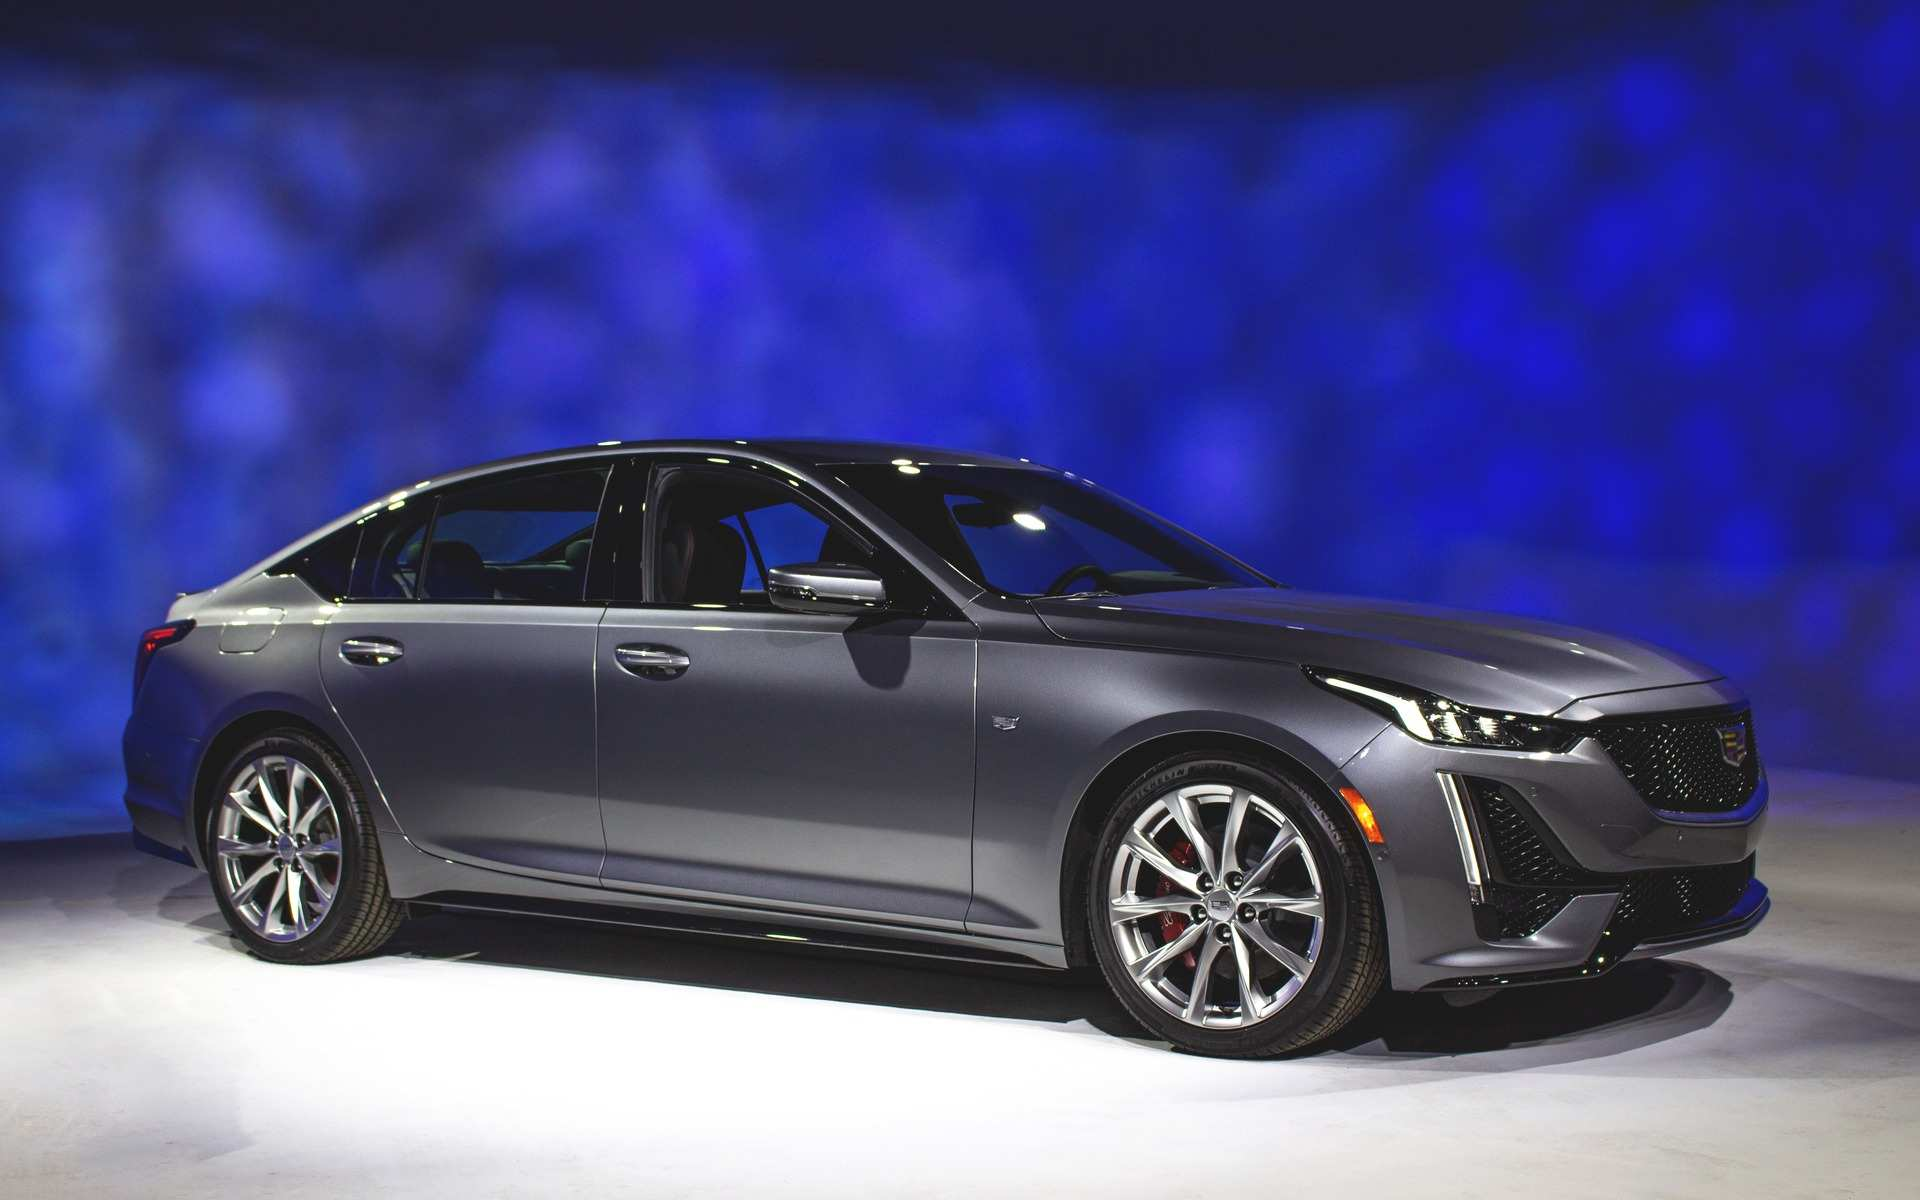 68 Gallery of Cadillac For 2020 Pictures with Cadillac For 2020